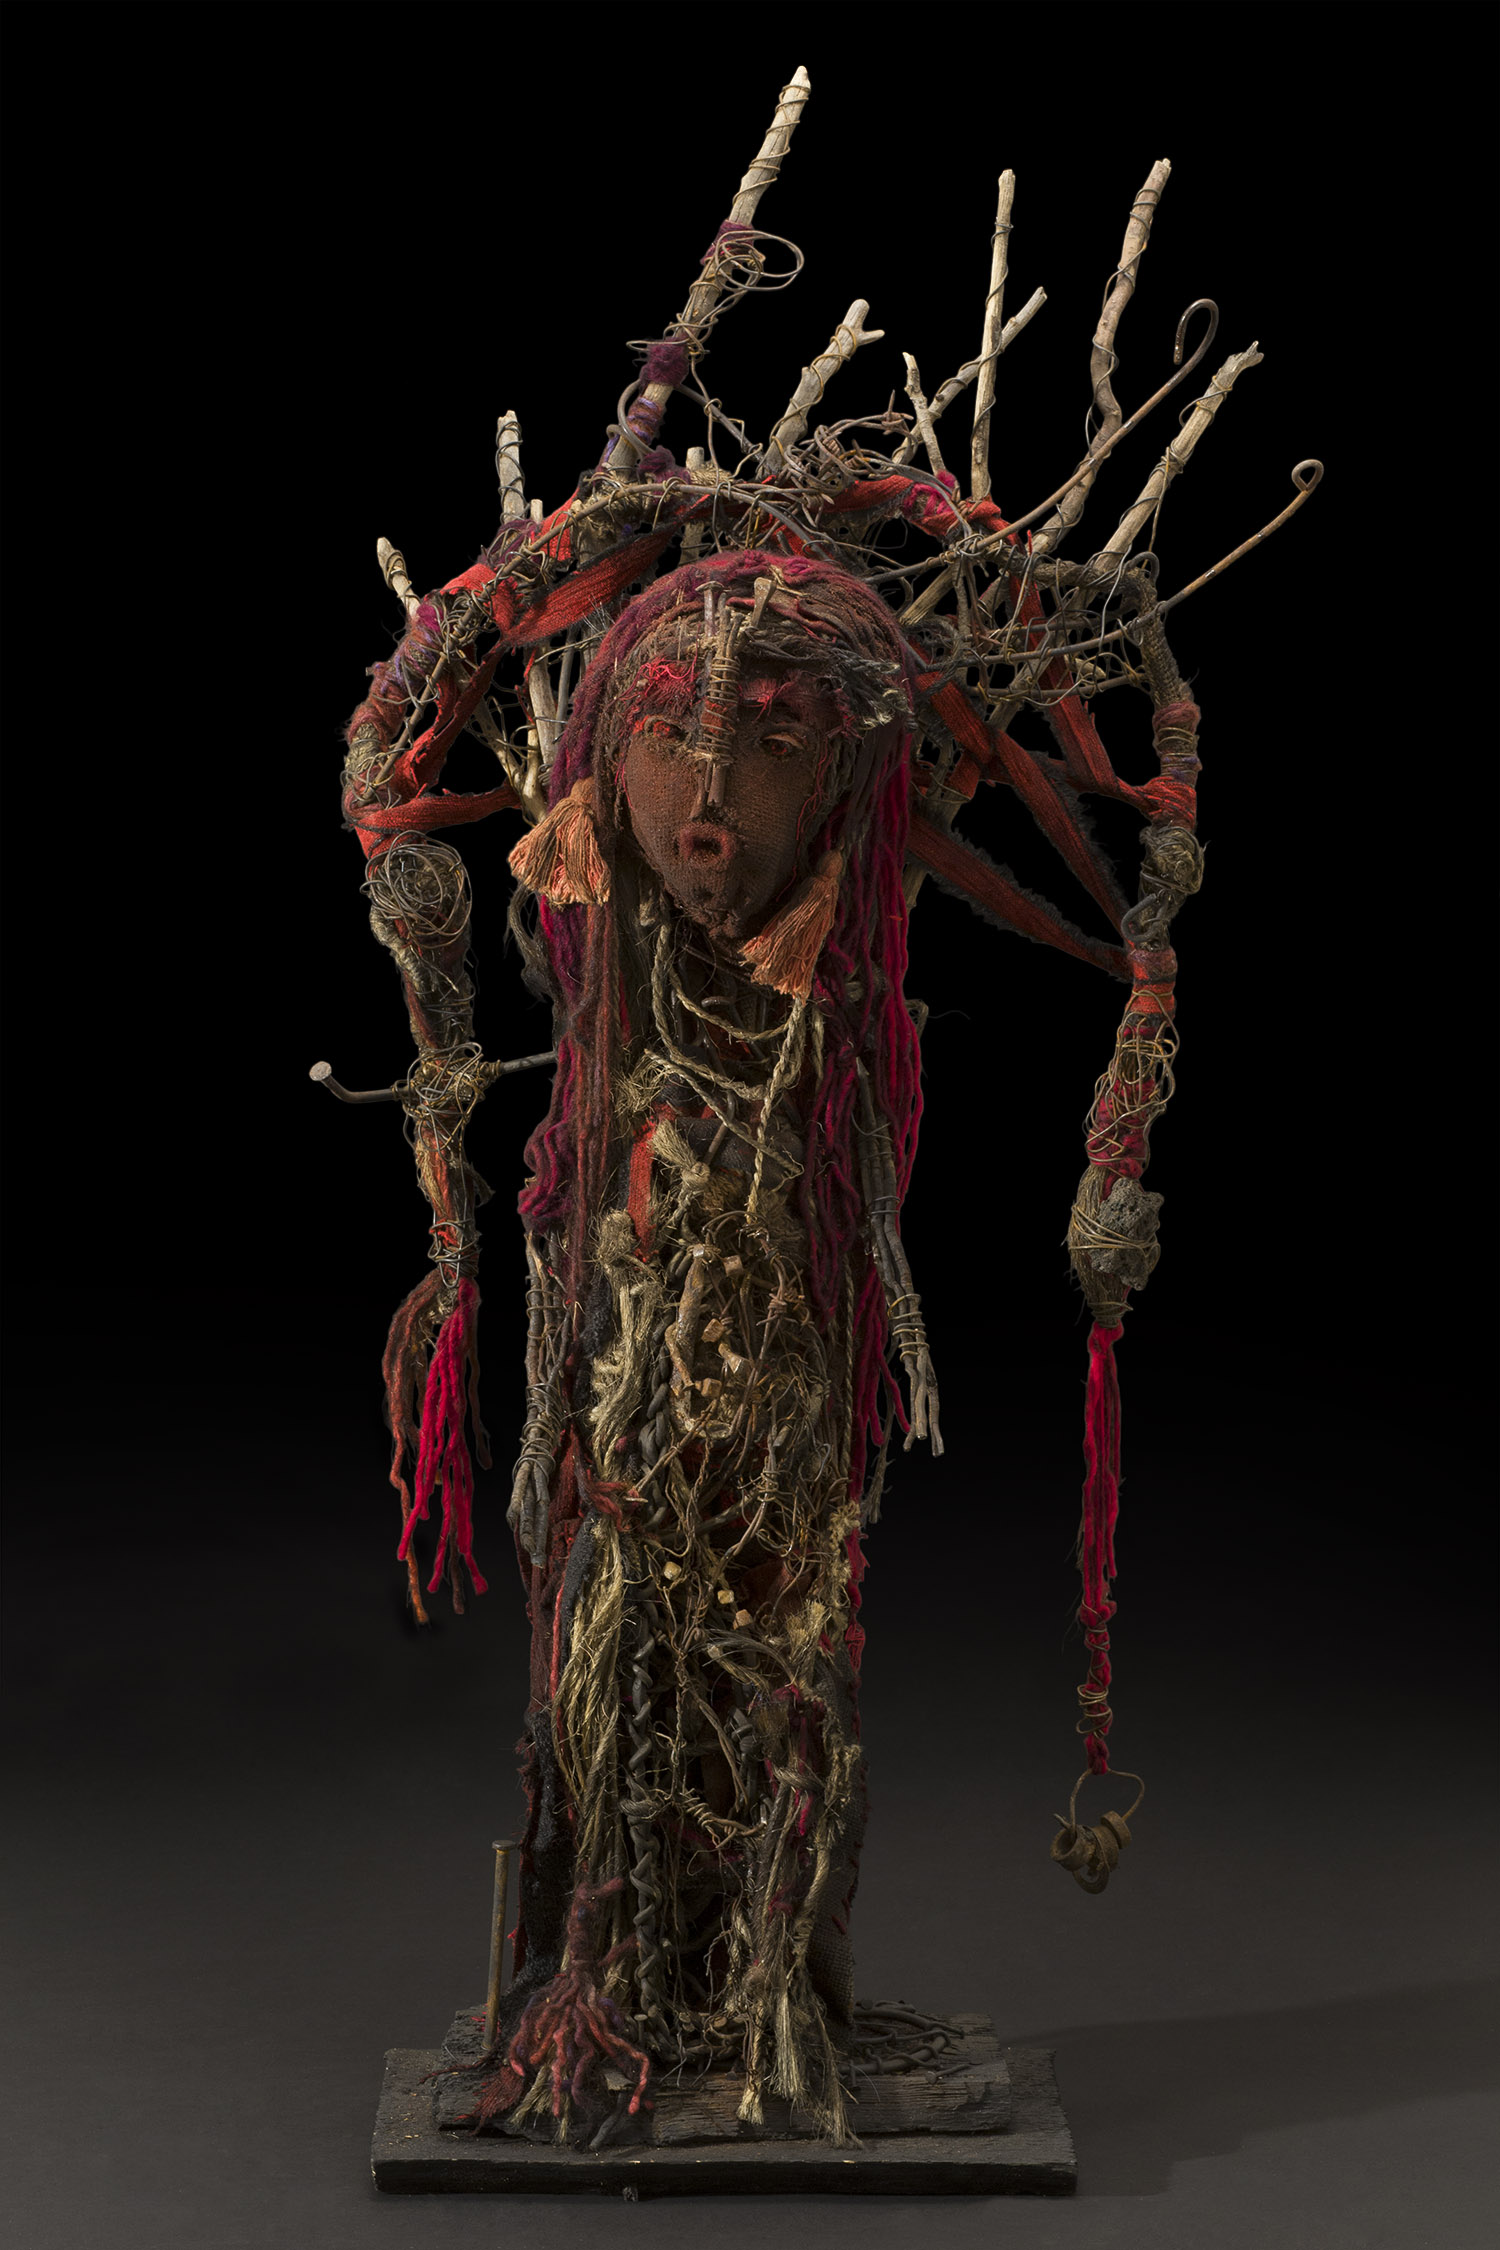 Sylvain and Ghyslaine Staëlens Personnage Soleil, 2014 Wood, metal, cloth, found objects 42 x 20 x 9.5 inches 106.7 x 50.8 x 24.1 cm GSS 30